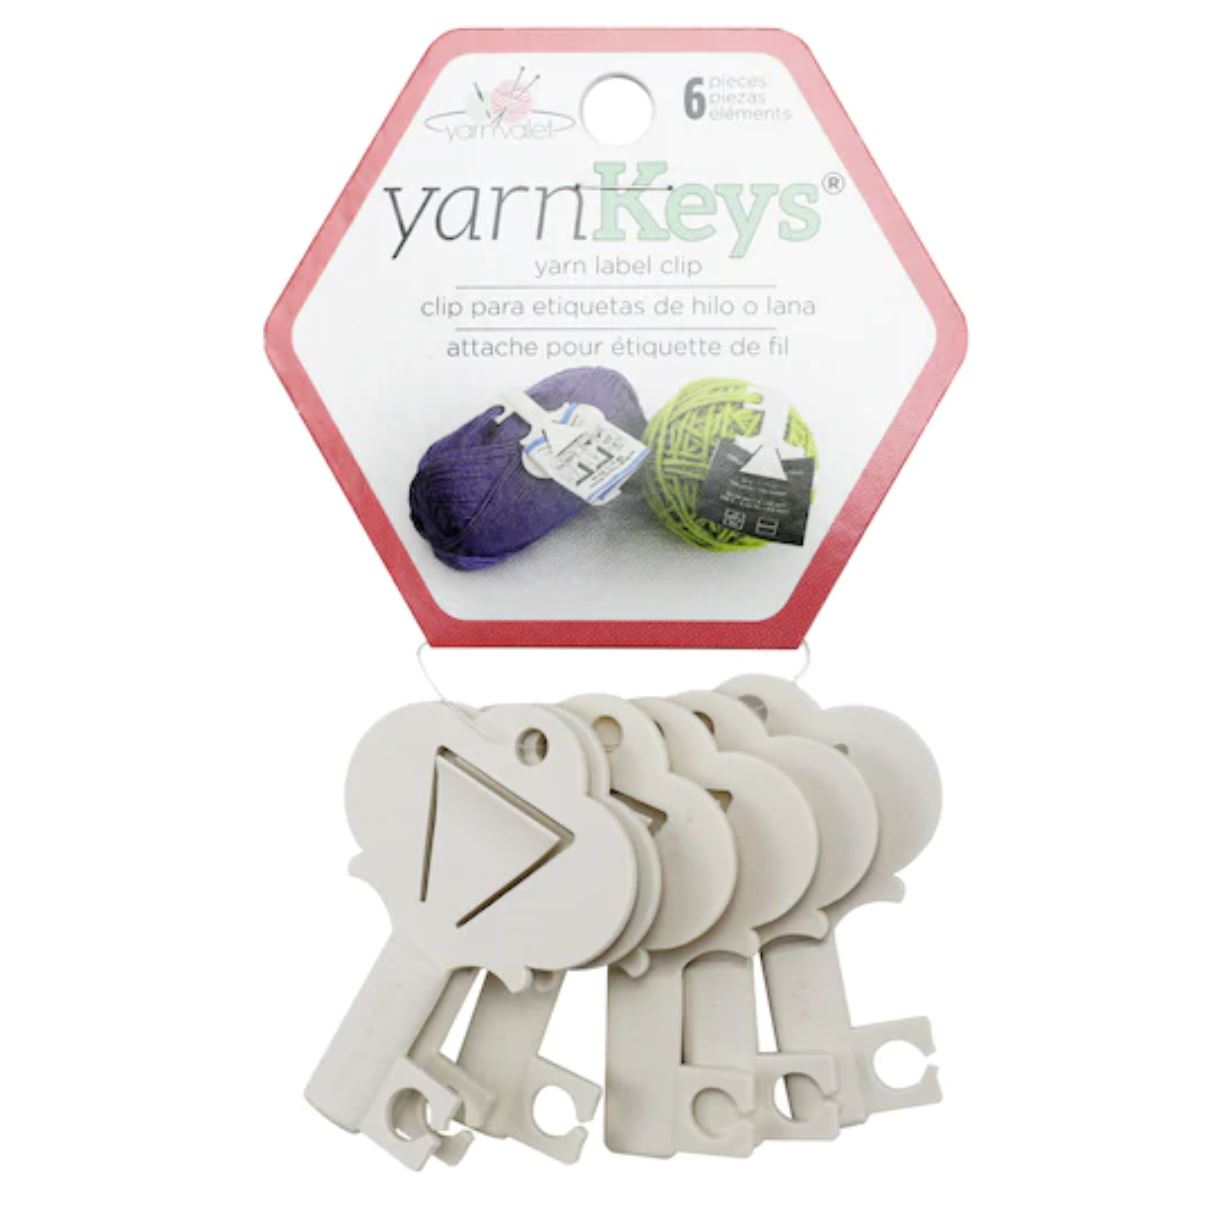 yarn label clips